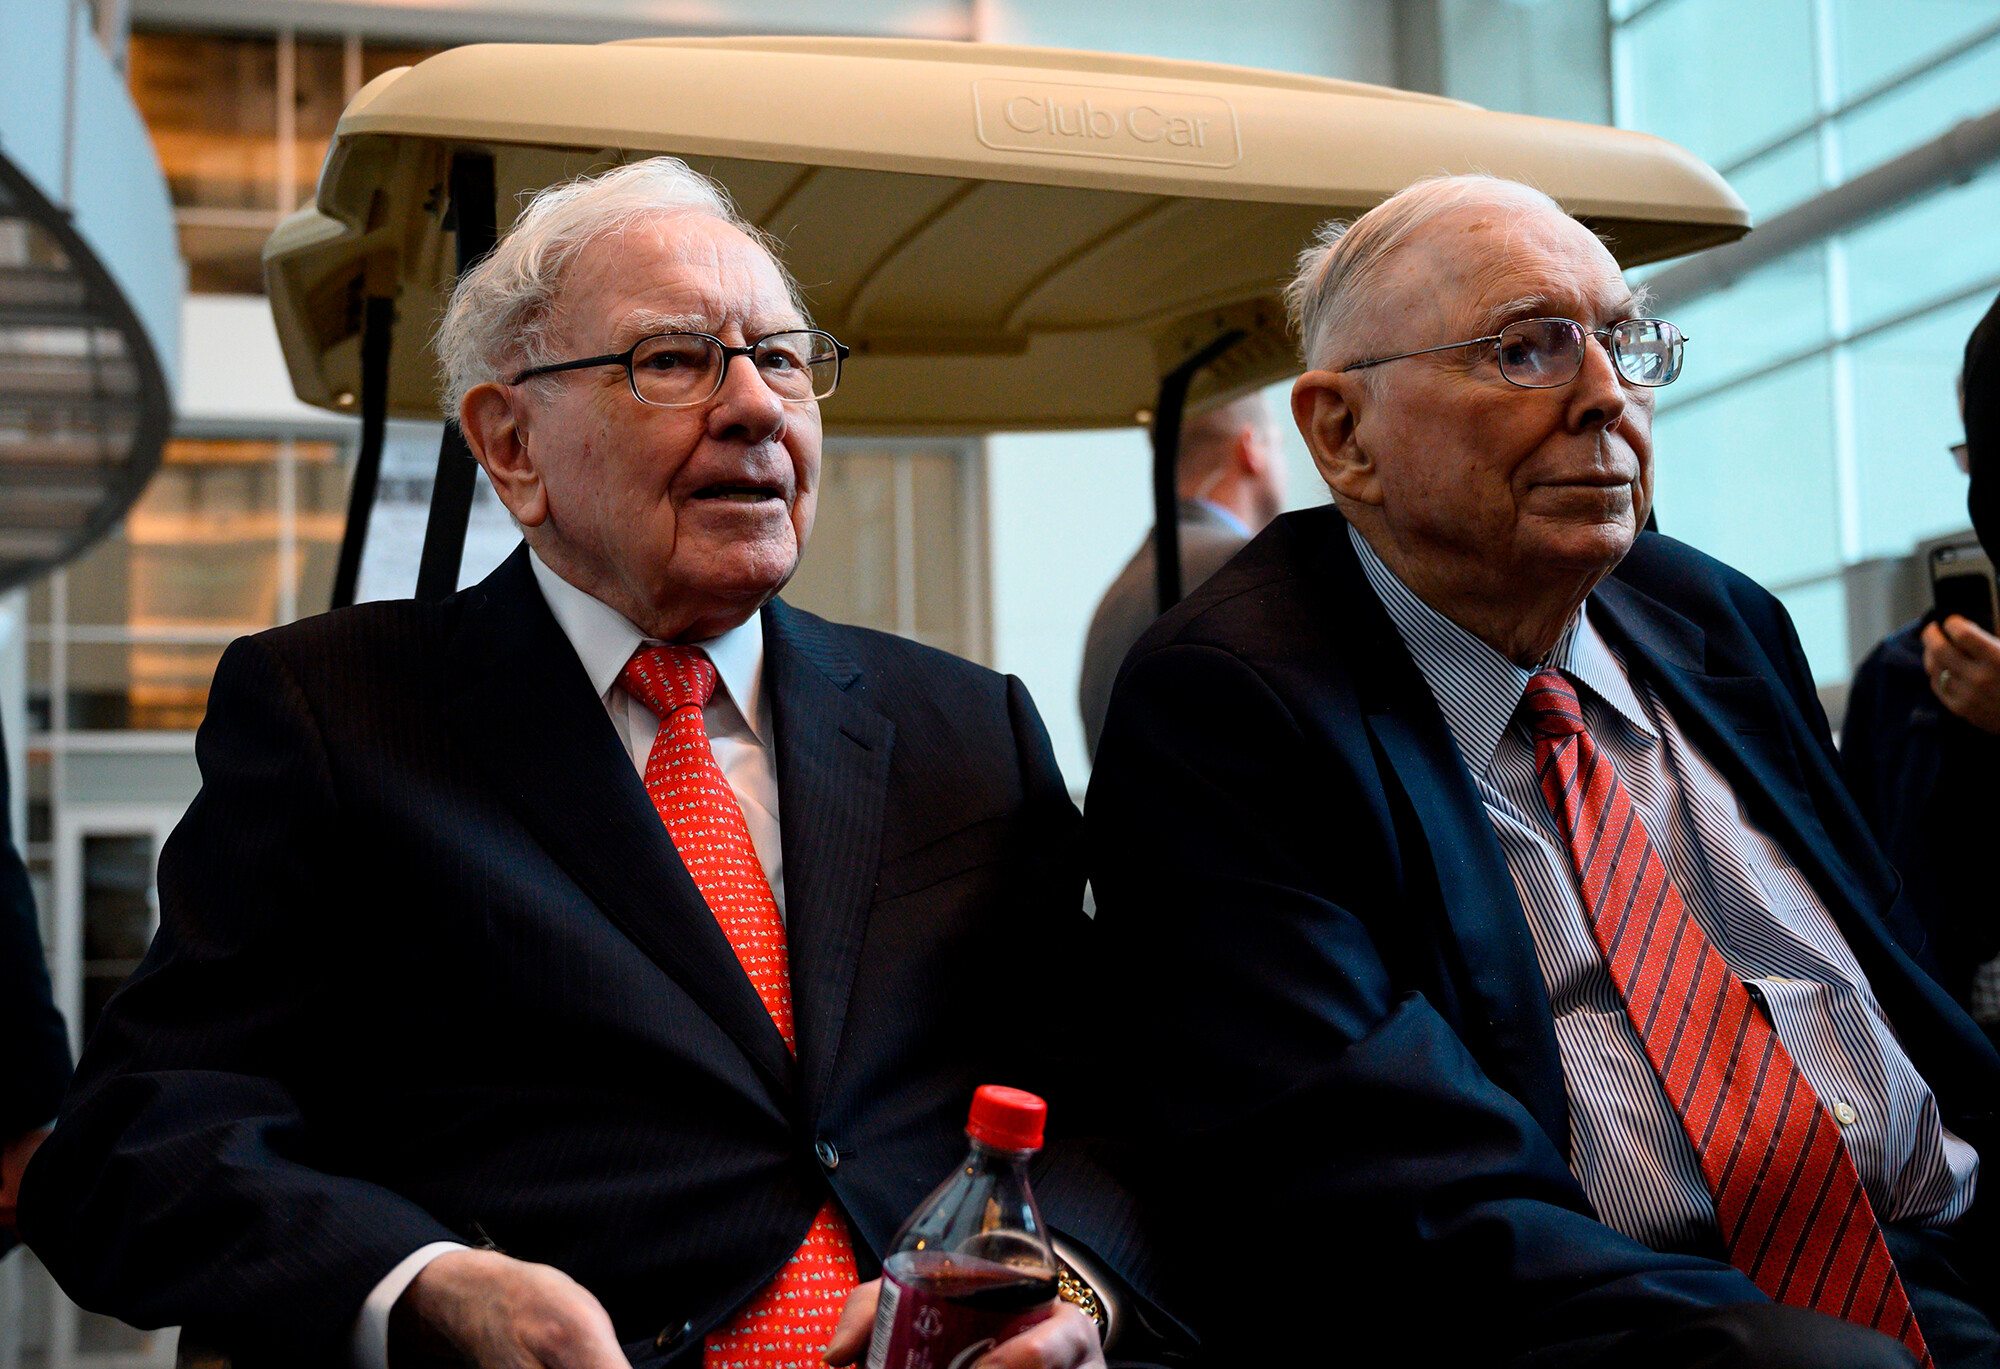 Buffett pal Charlie Munger is doubling down on Alibaba bet